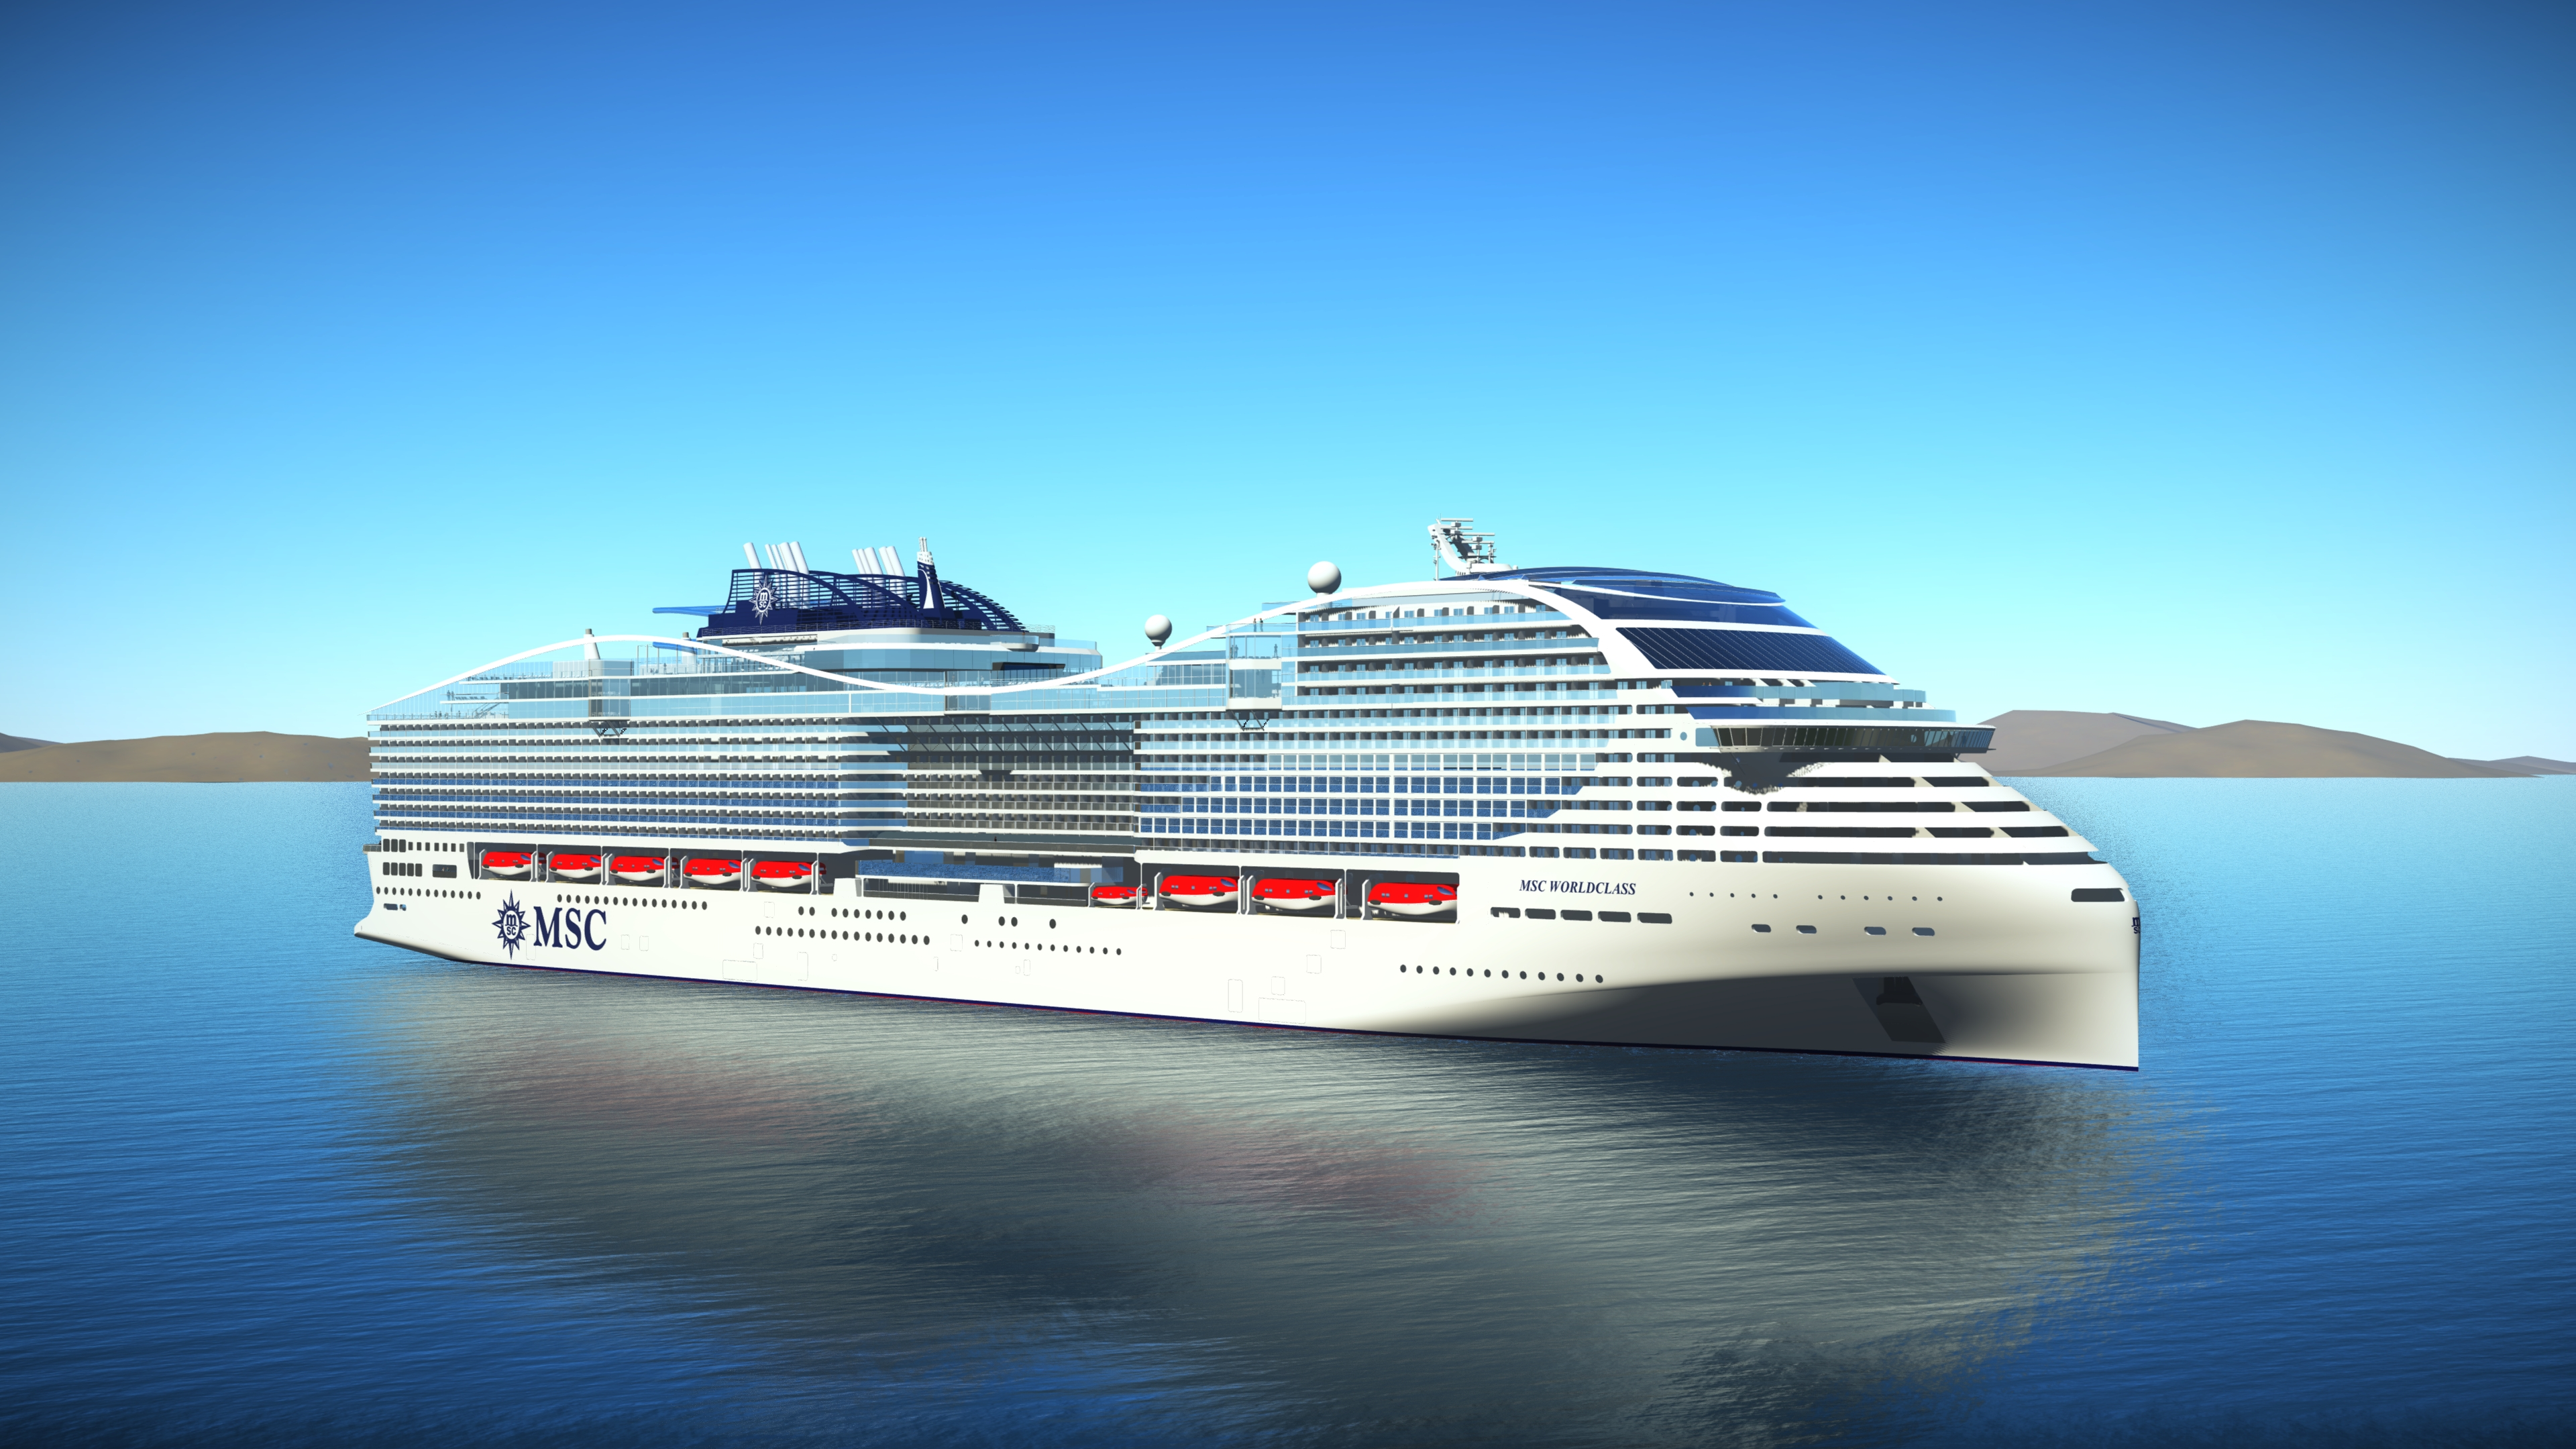 msc-cruises-world-class-lng-powered-ship_7